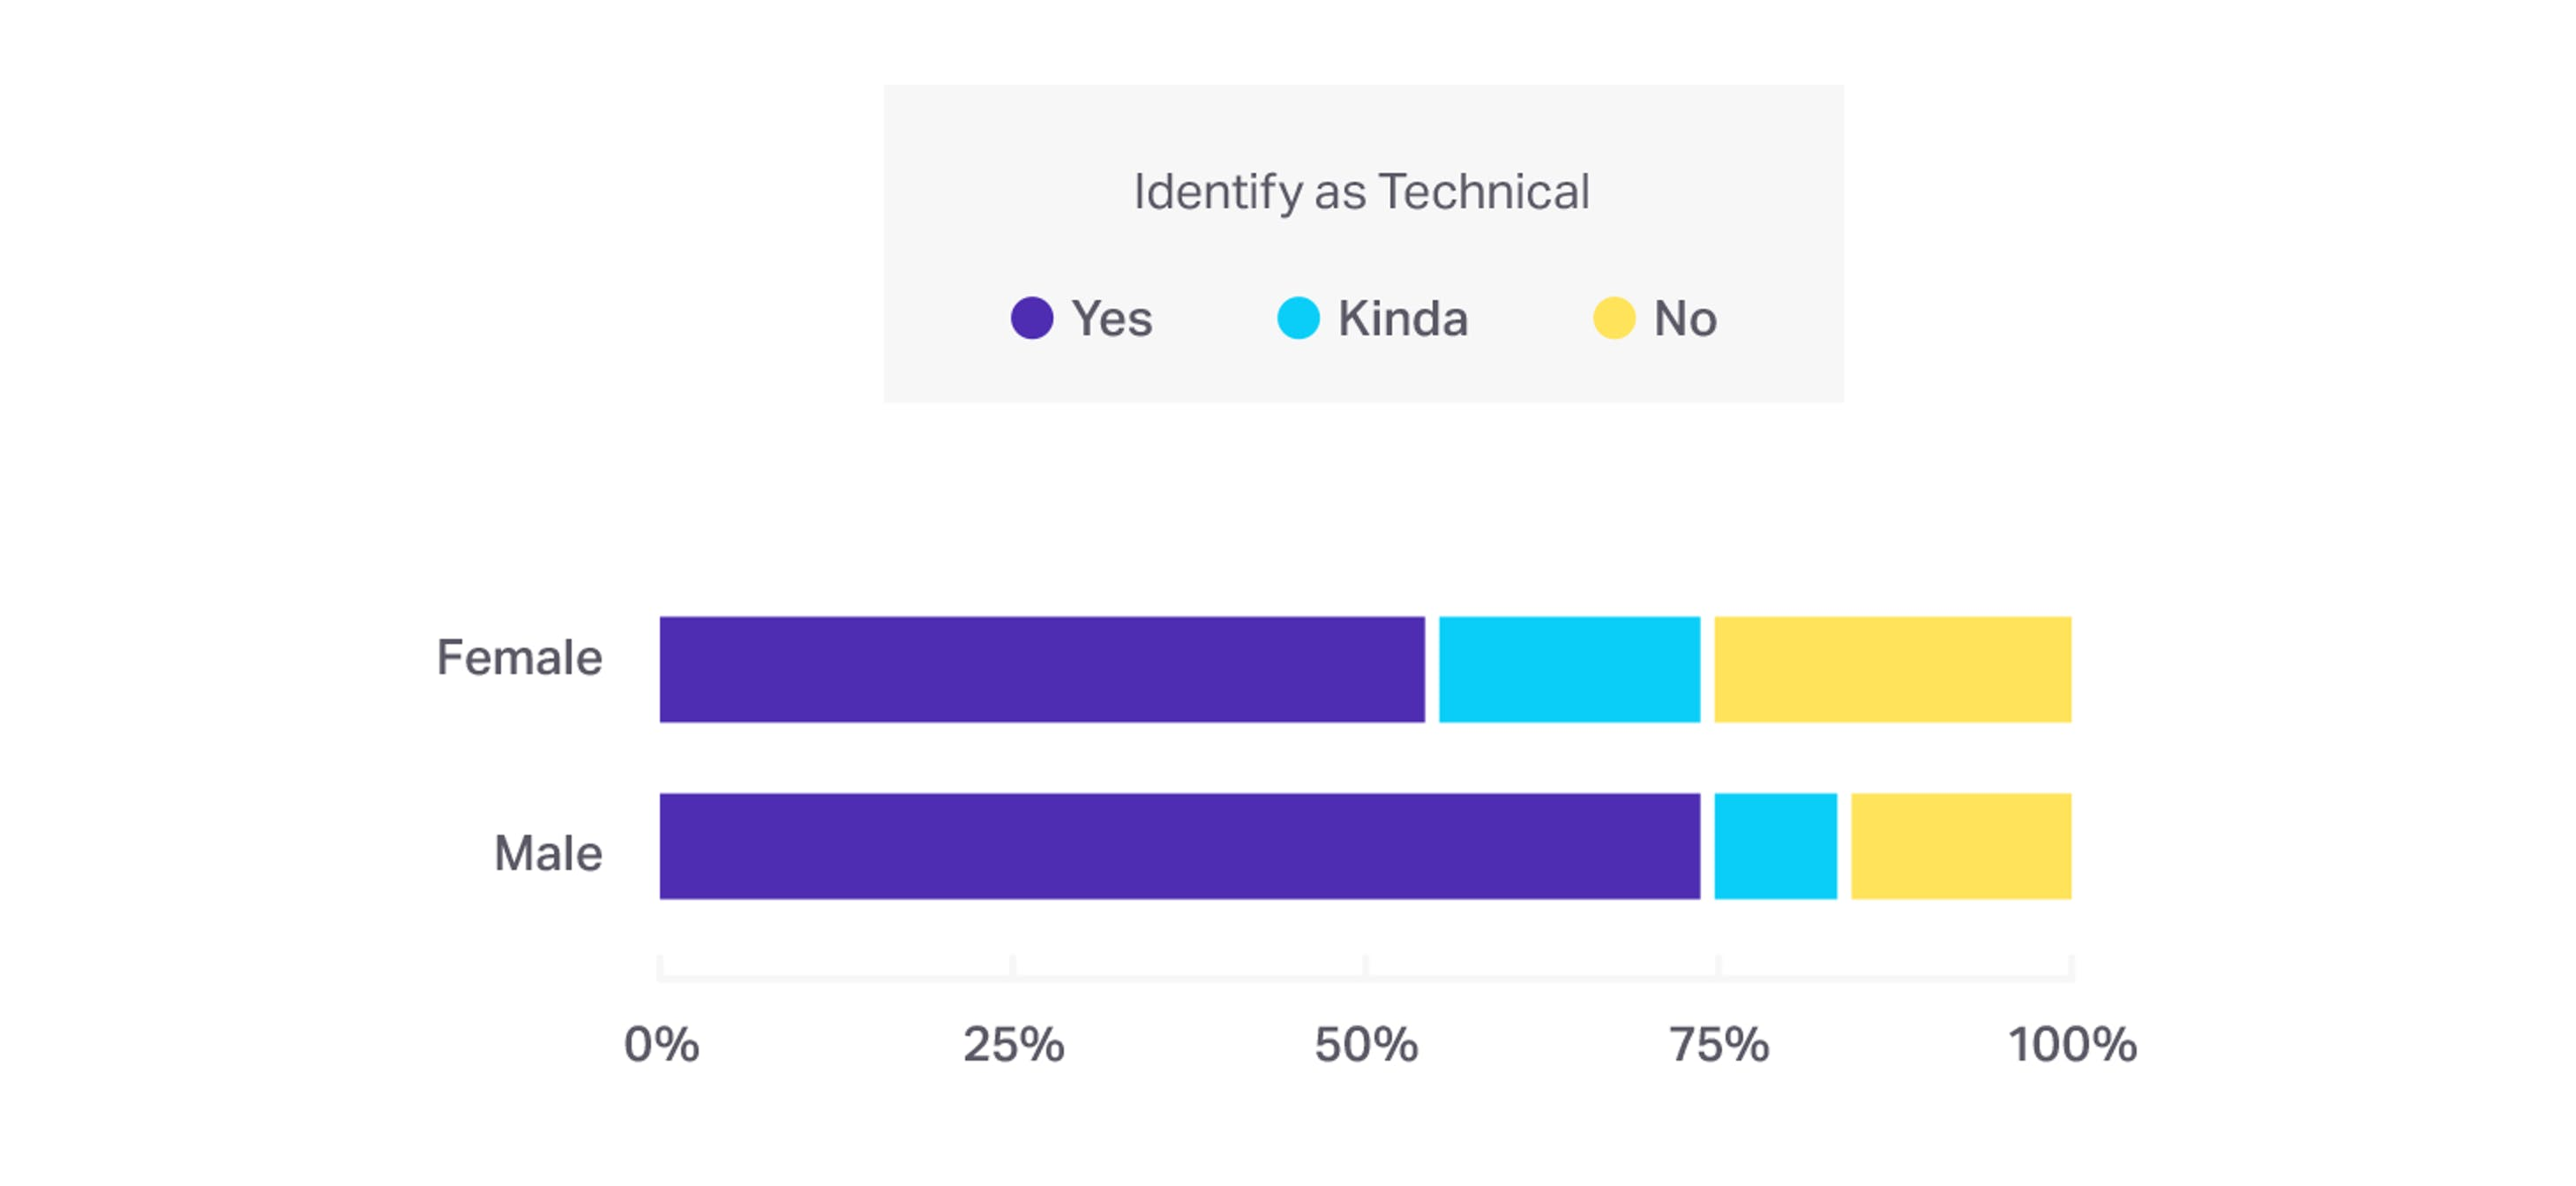 Comparision by genders who identify as technical